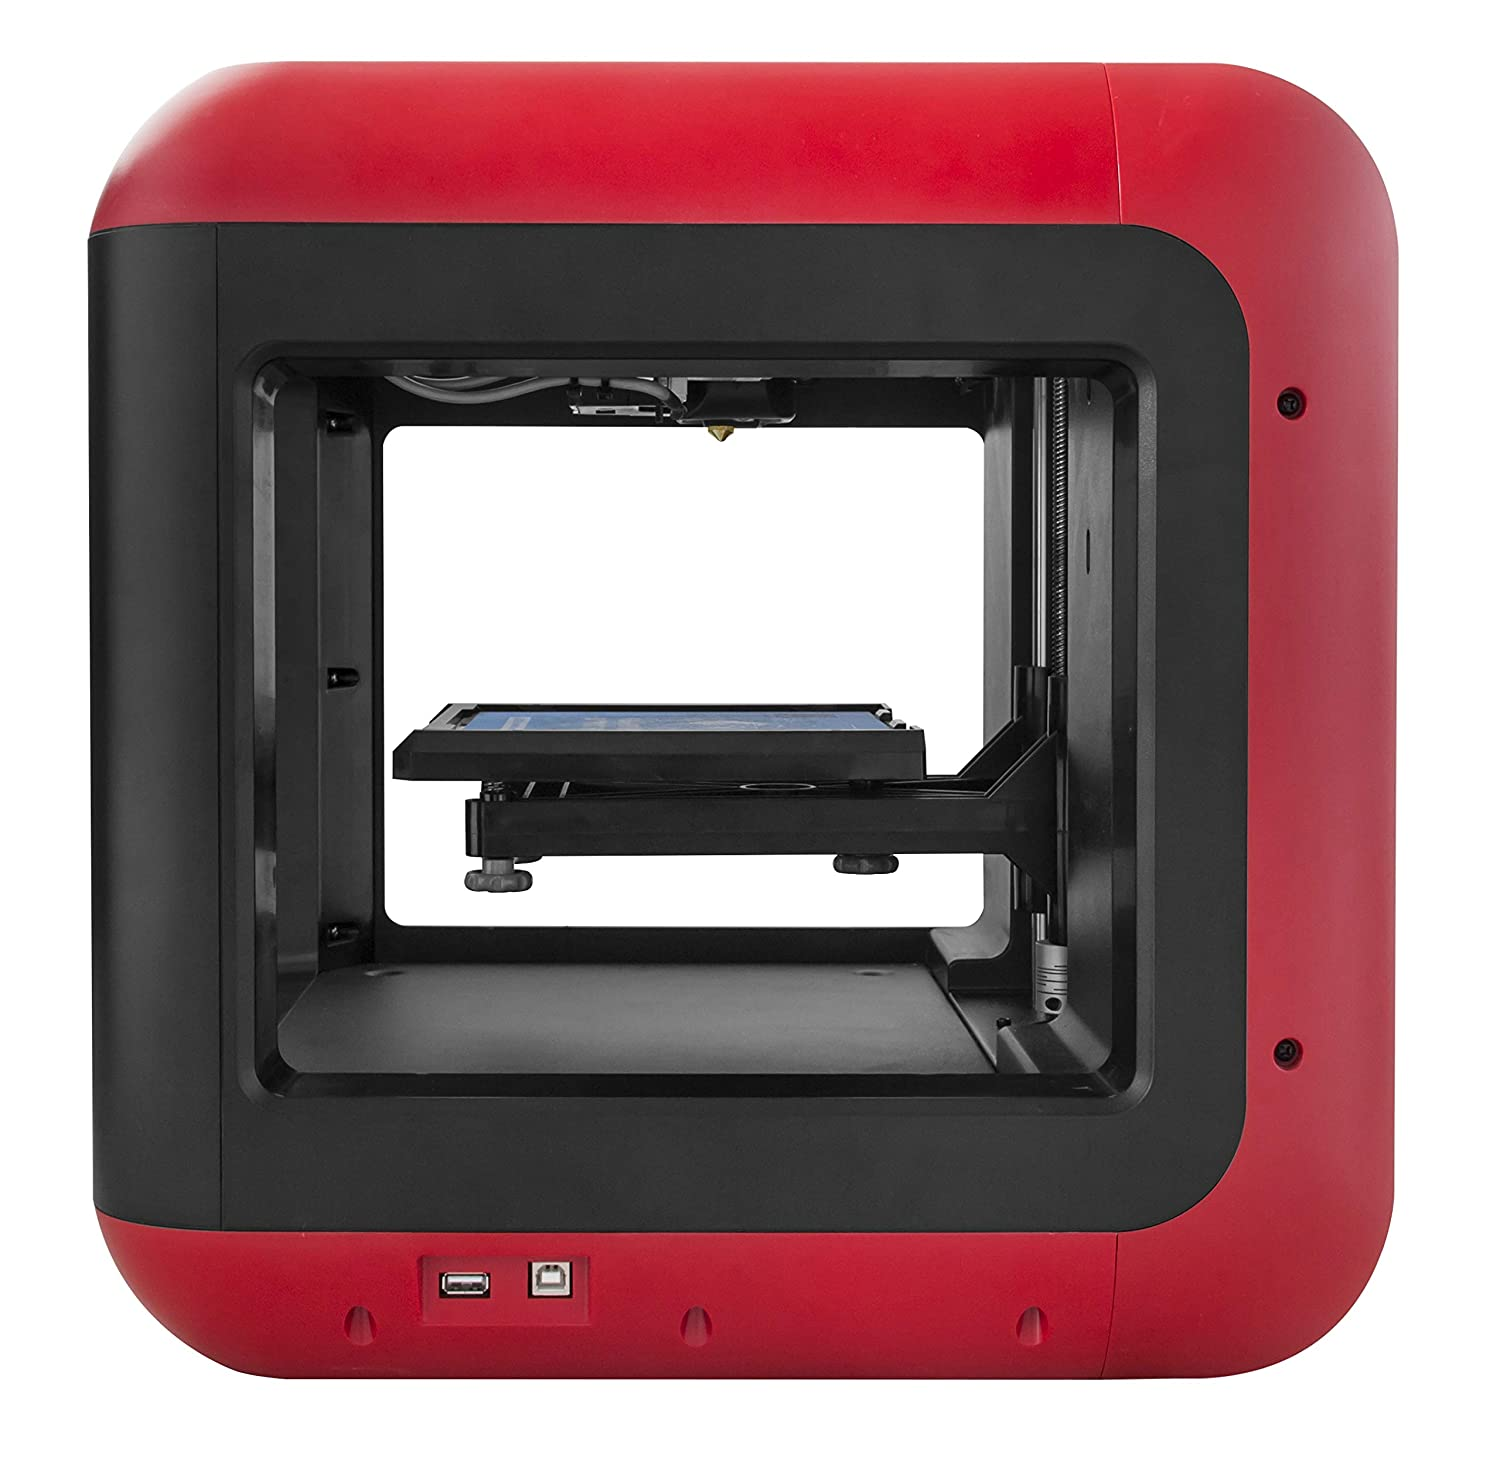 3d printer by WOL3D with 1 filament free